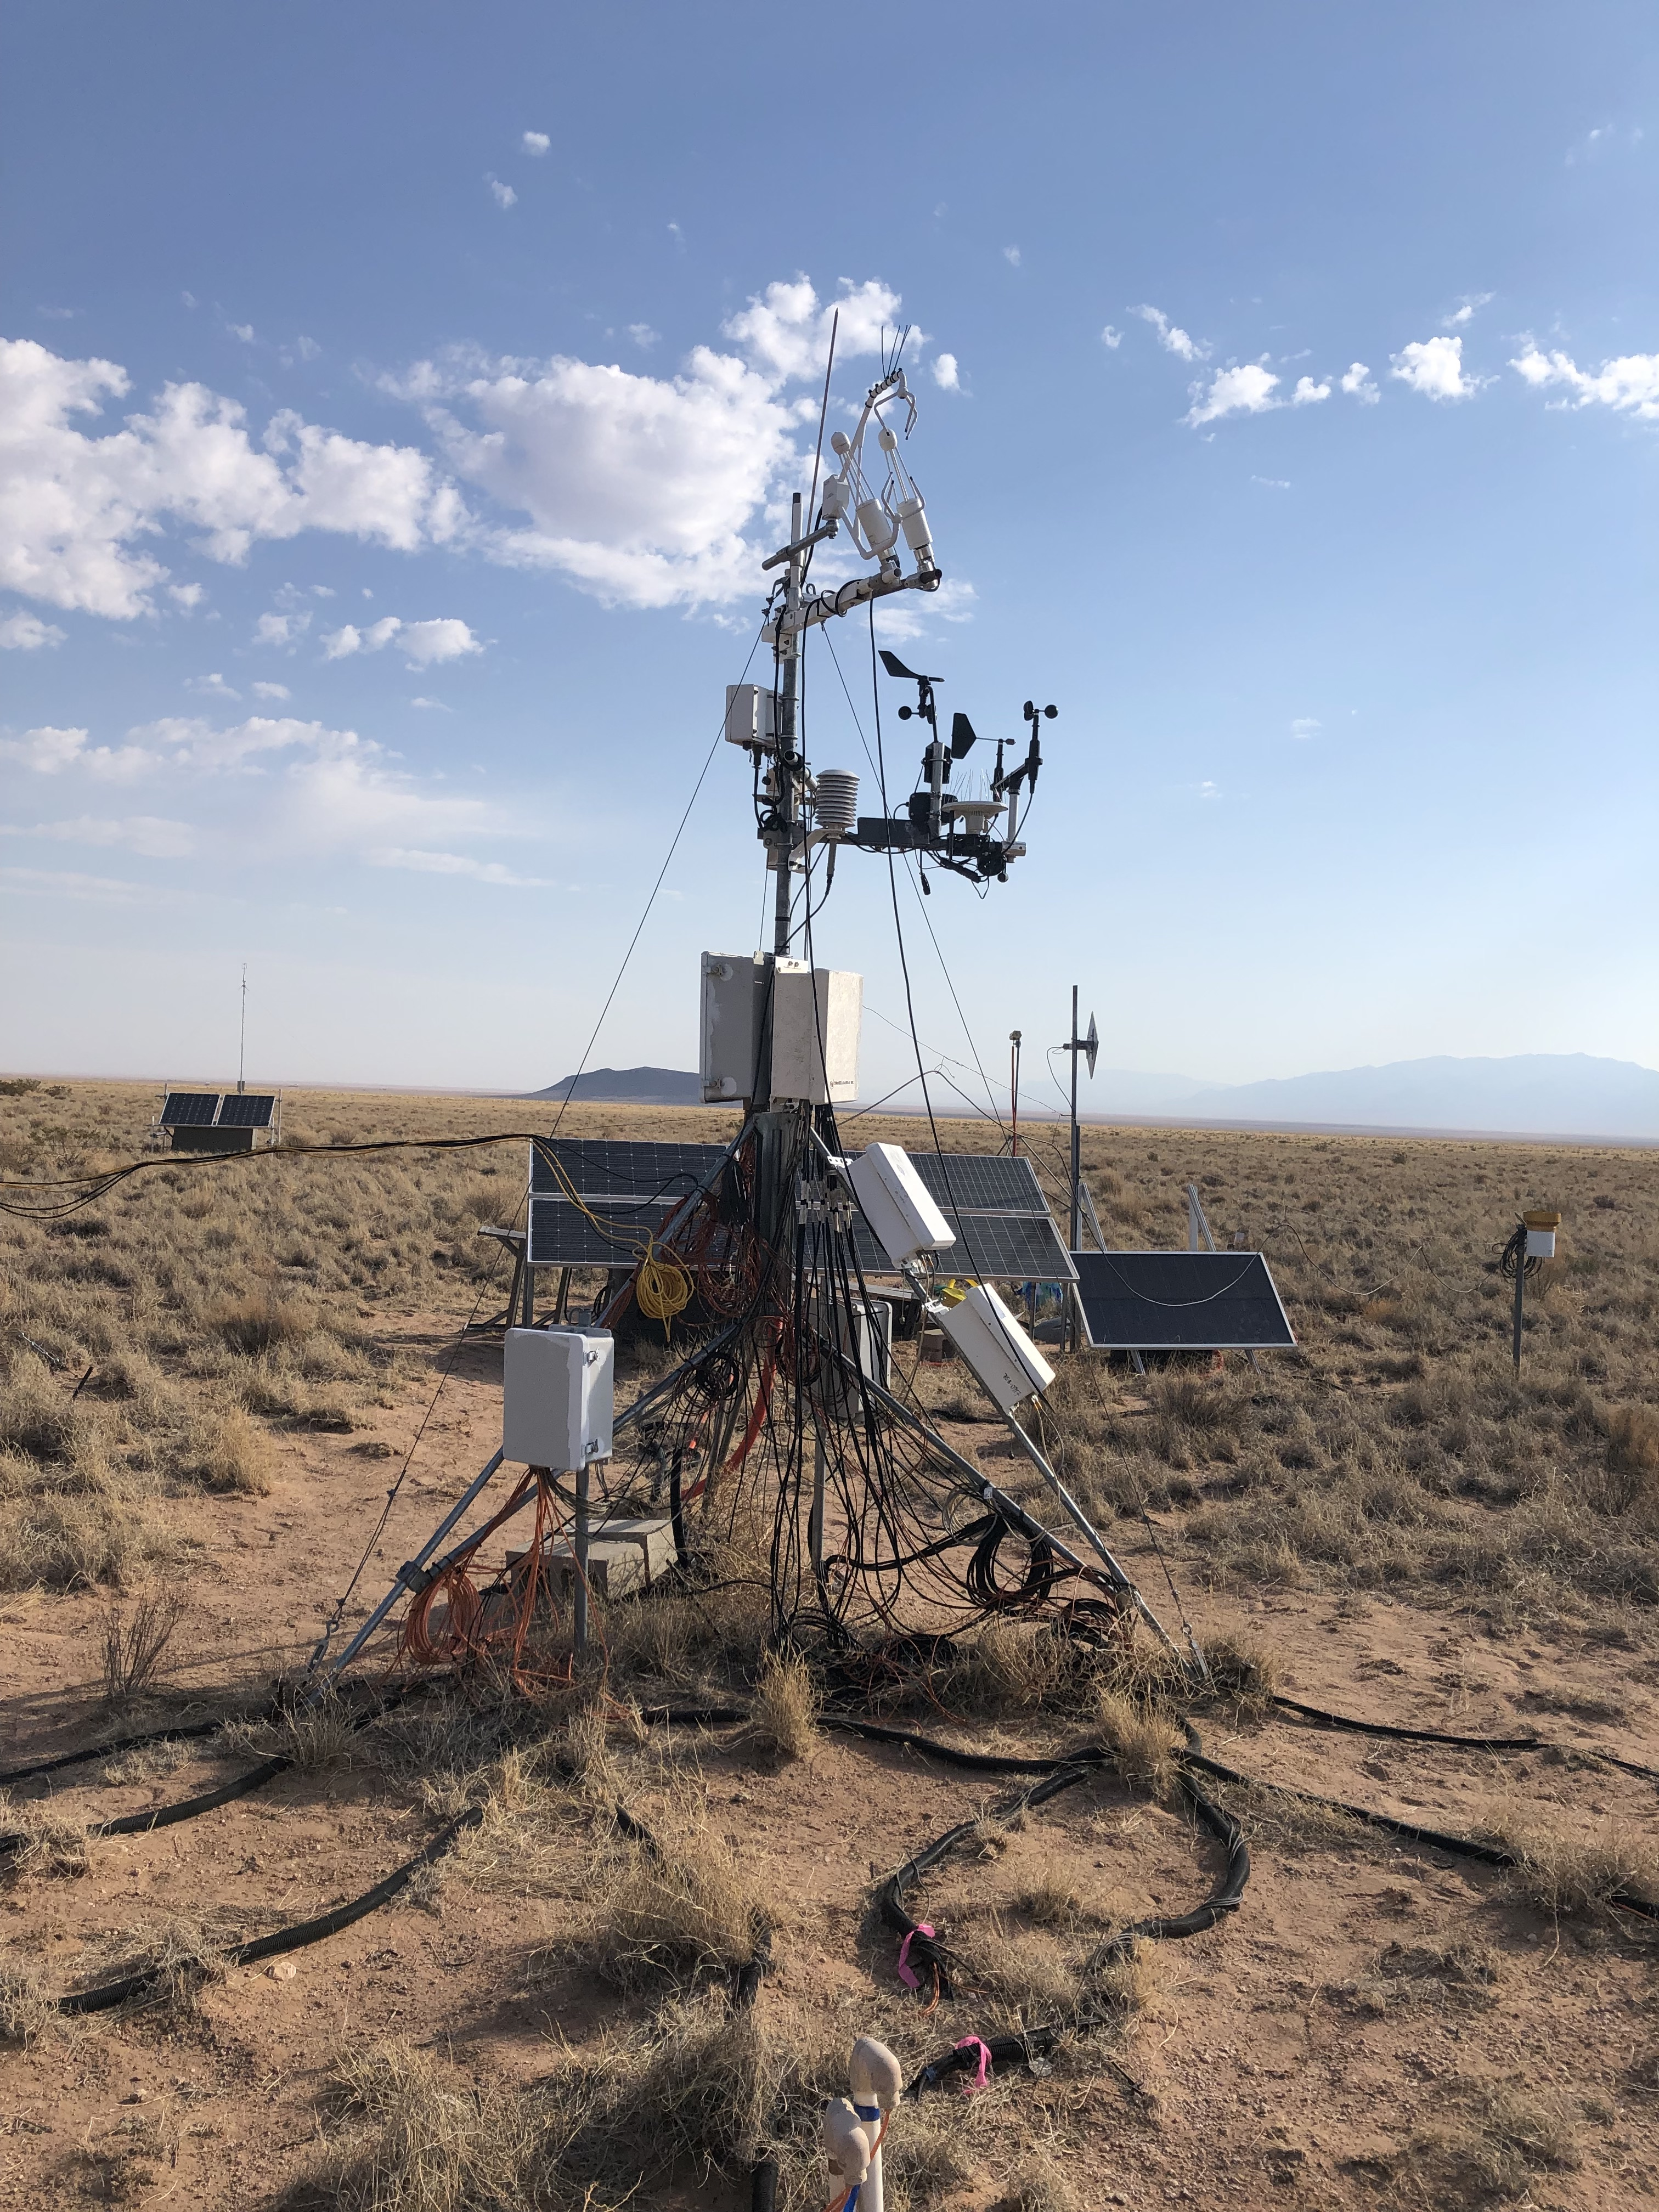 A picture of a flux tower in a desert grassland